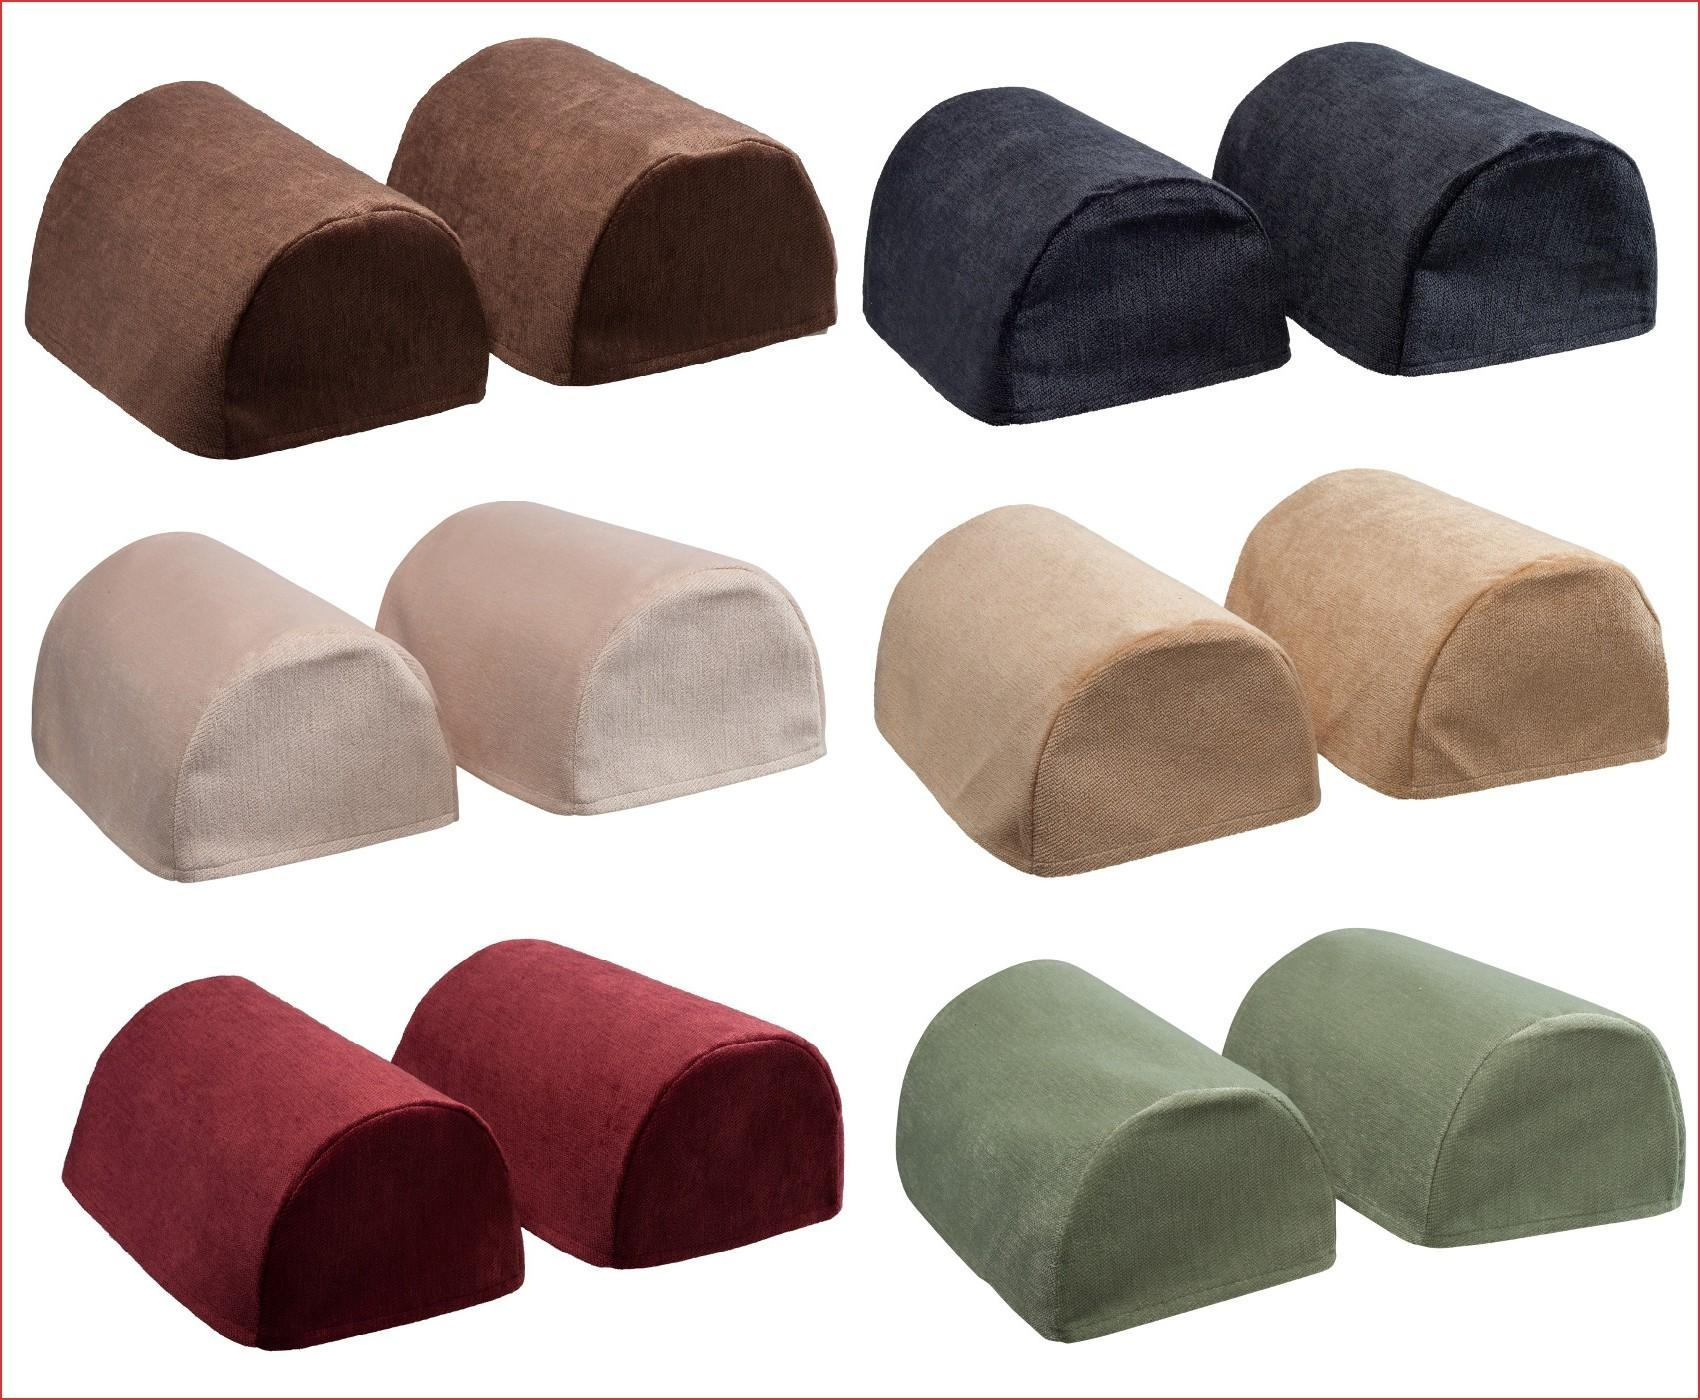 Sofa Arm Cover Protectors Luxury Chenille Round Arm Caps Plain Throughout Sofa Arm Caps (Image 18 of 20)